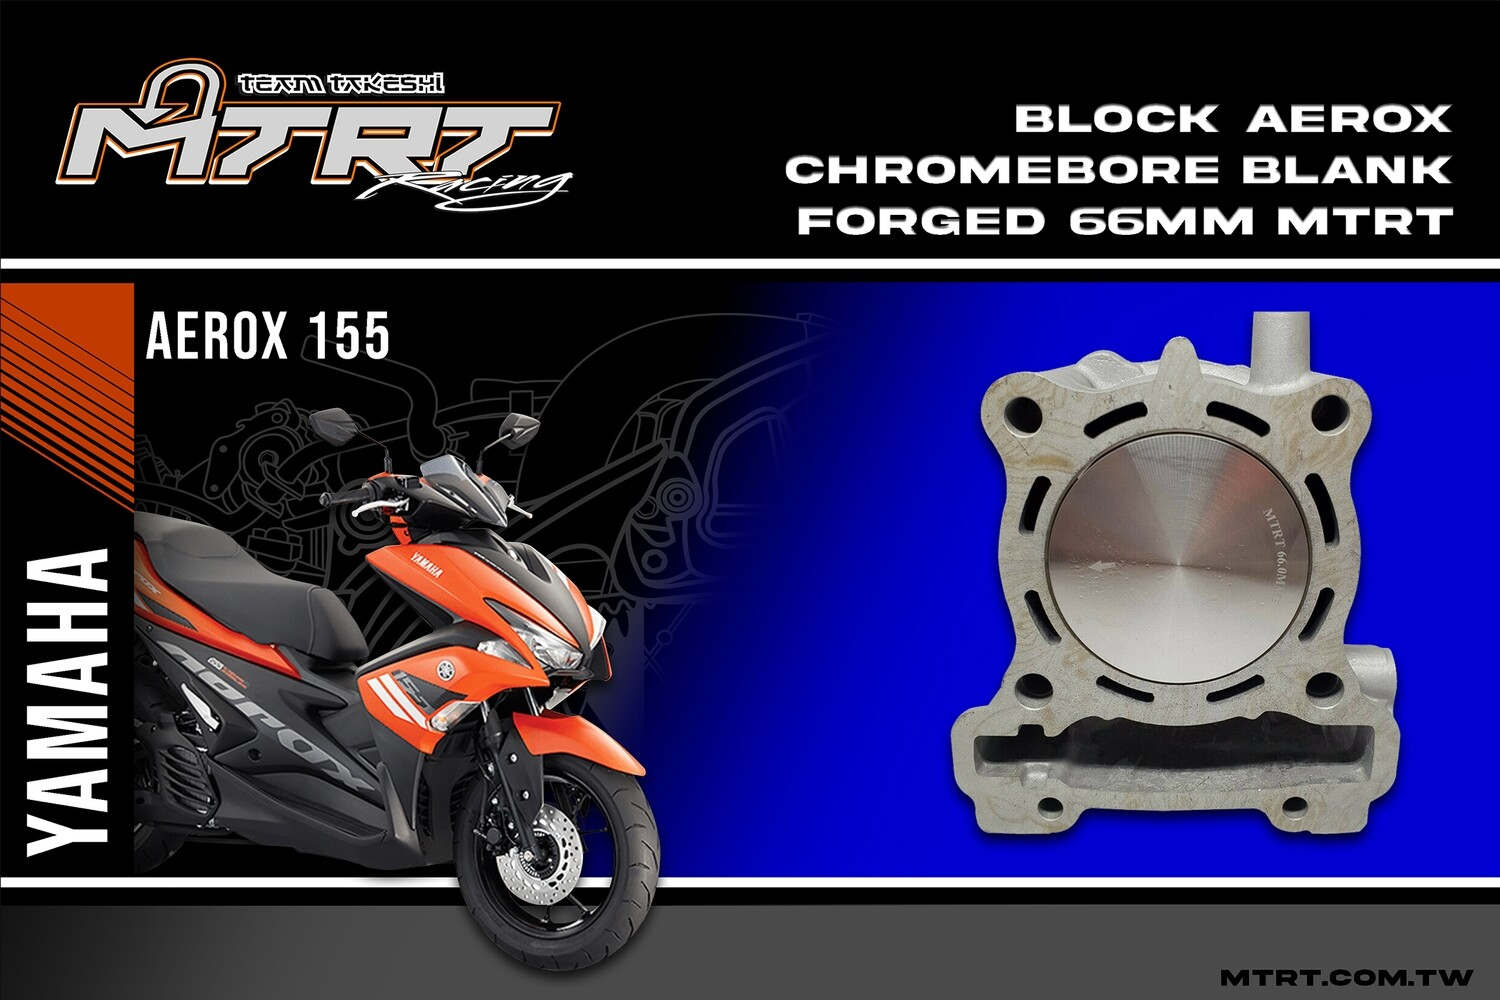 66MM CHROMEBORE CYLINDER BLOCK FOR NMAX/AEROX  WITH BLANK FORGED PISTON MTRT